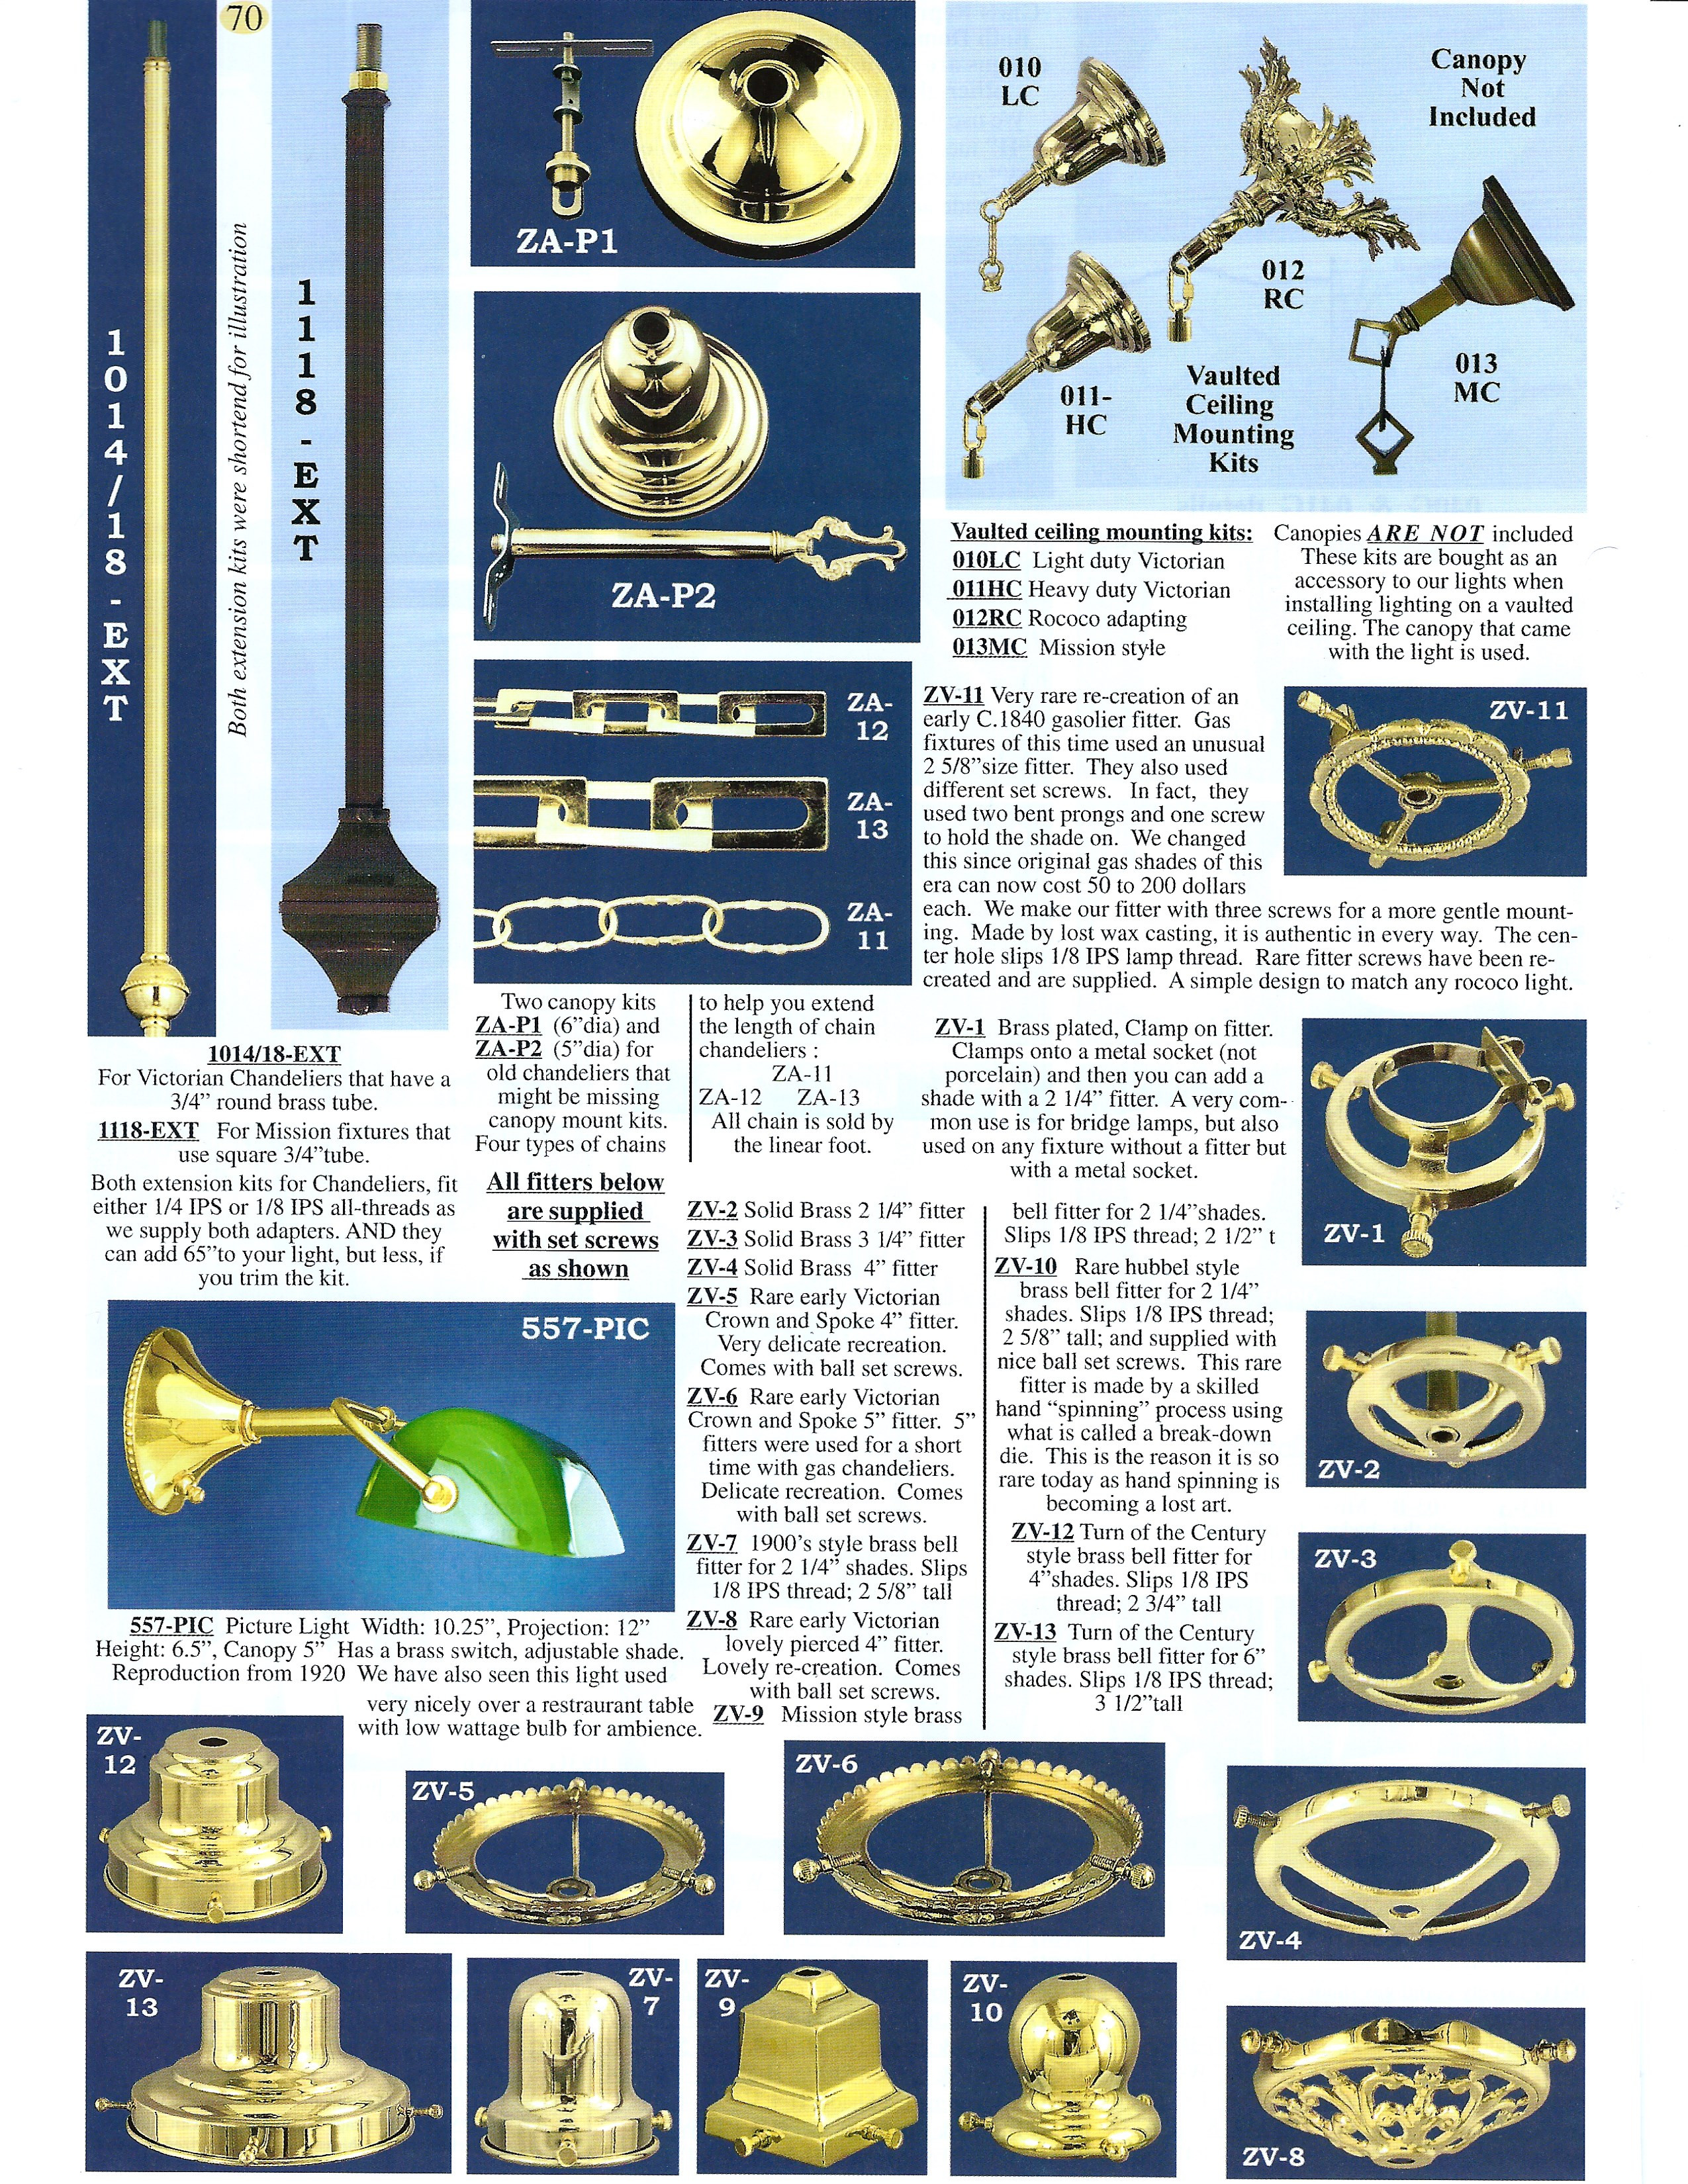 Catalog page 96